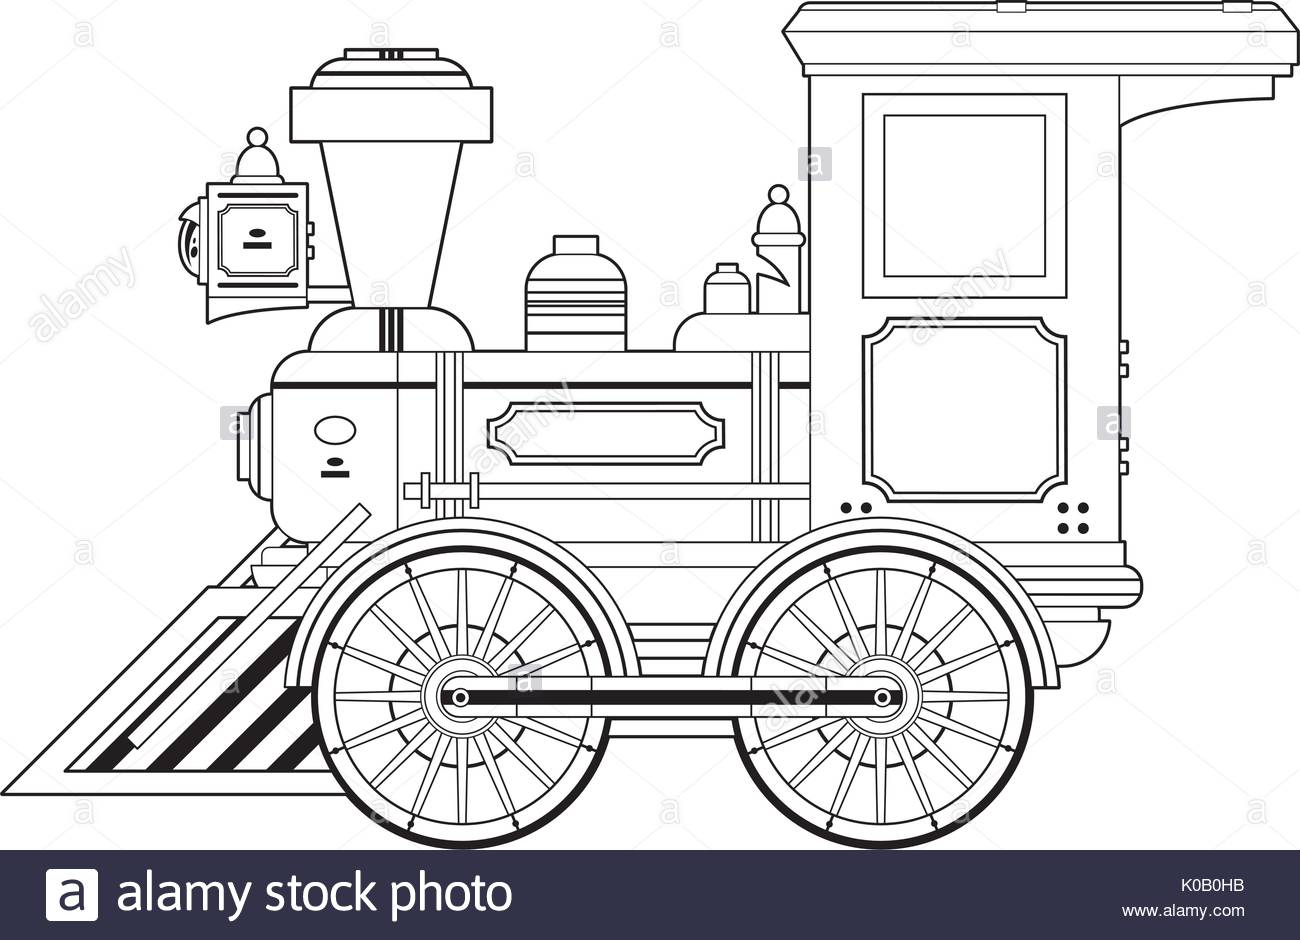 1300x940 Steam Train Illustration Stock Photos Amp Steam Train Illustration